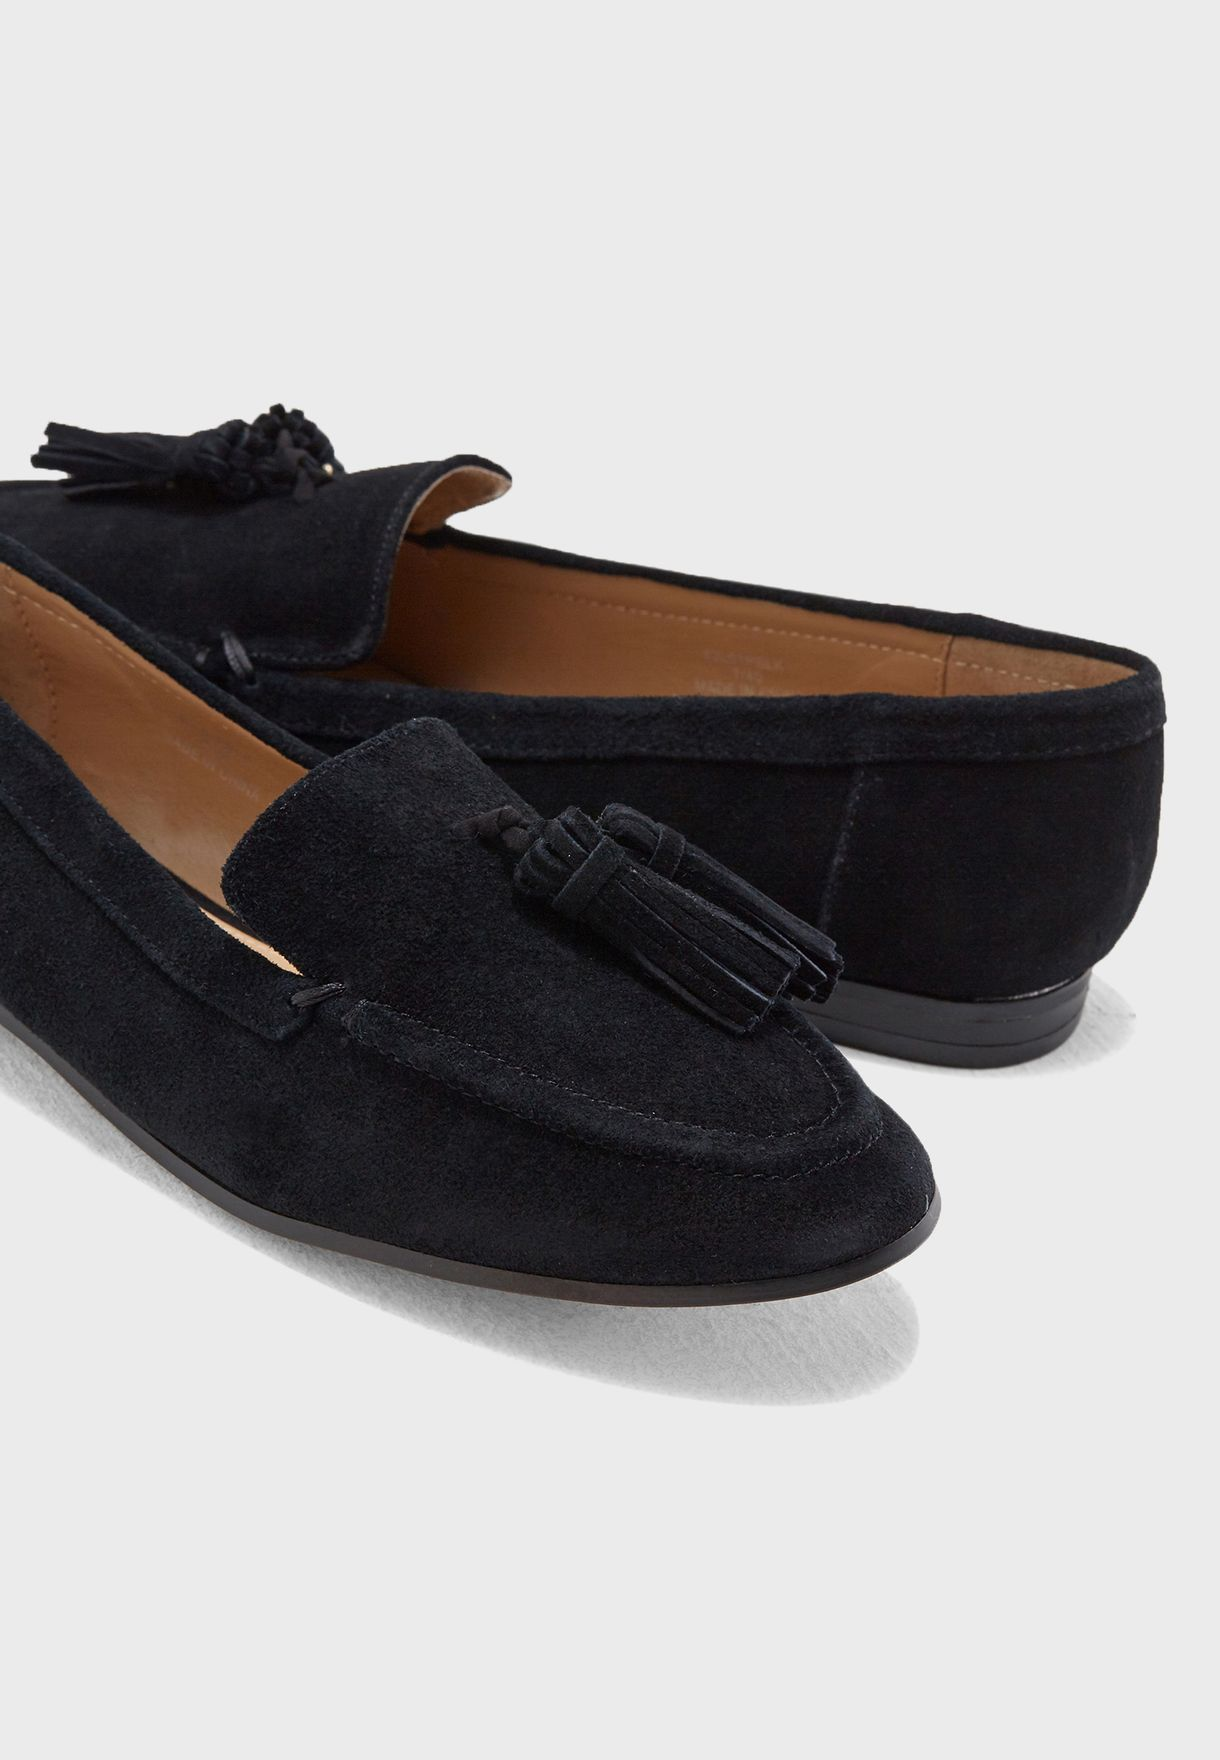 fb997f77ade Shop Topshop black Lexi Suede Loafers 42L01PBLK for Women in UAE ...